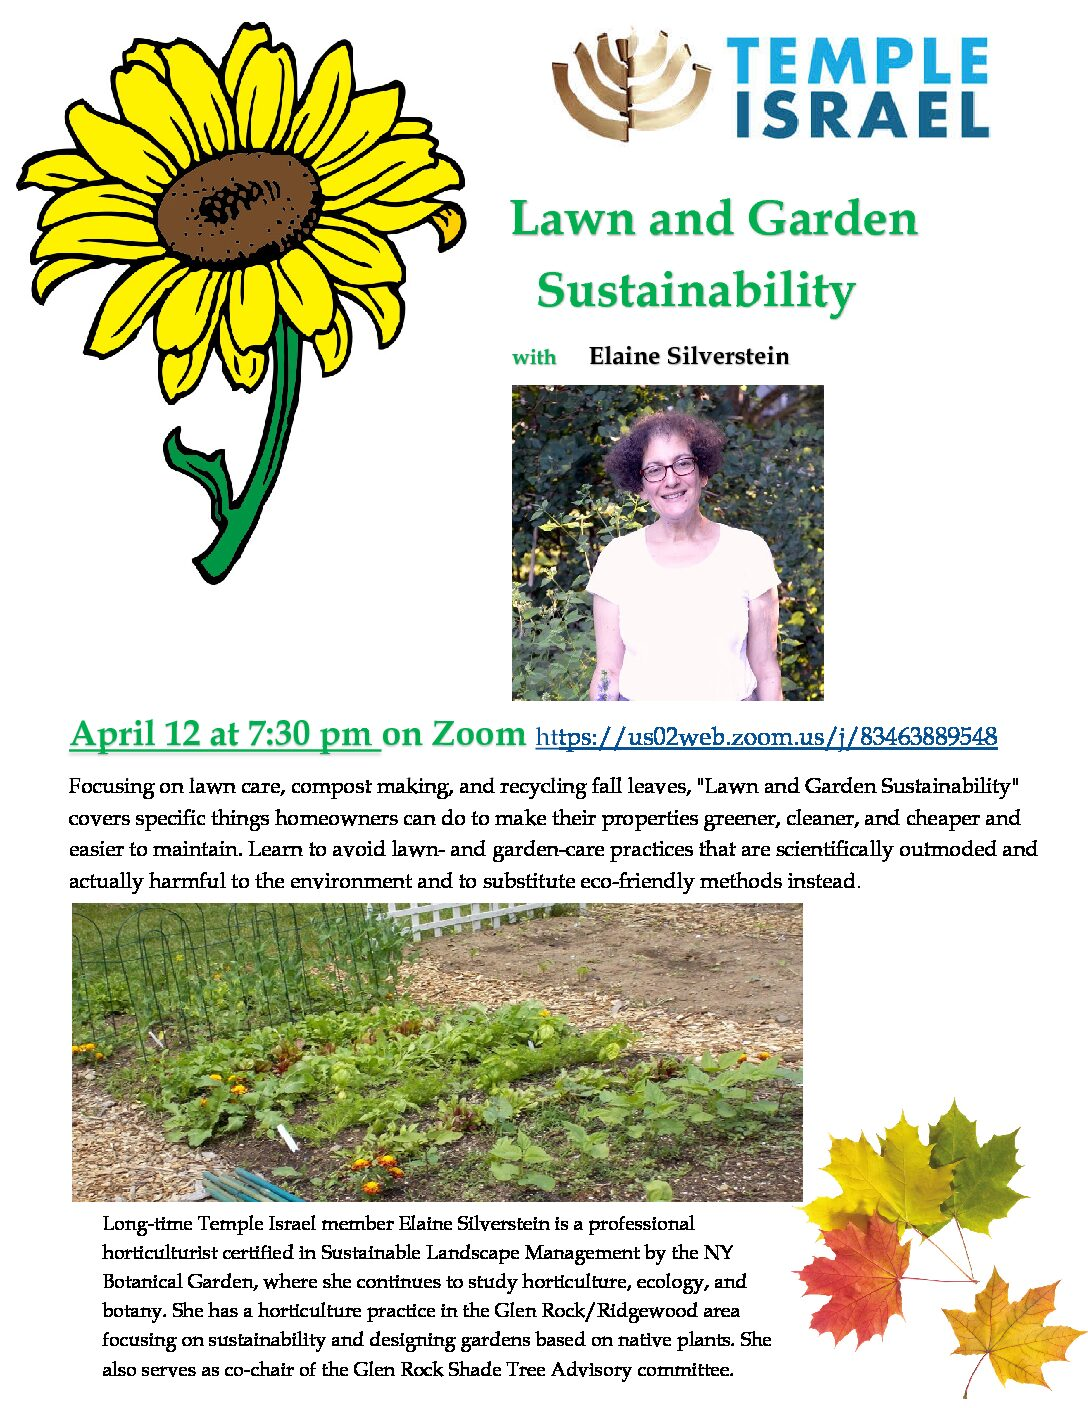 """Sustainability in the Home Garden"" by Elaine Silverstein"